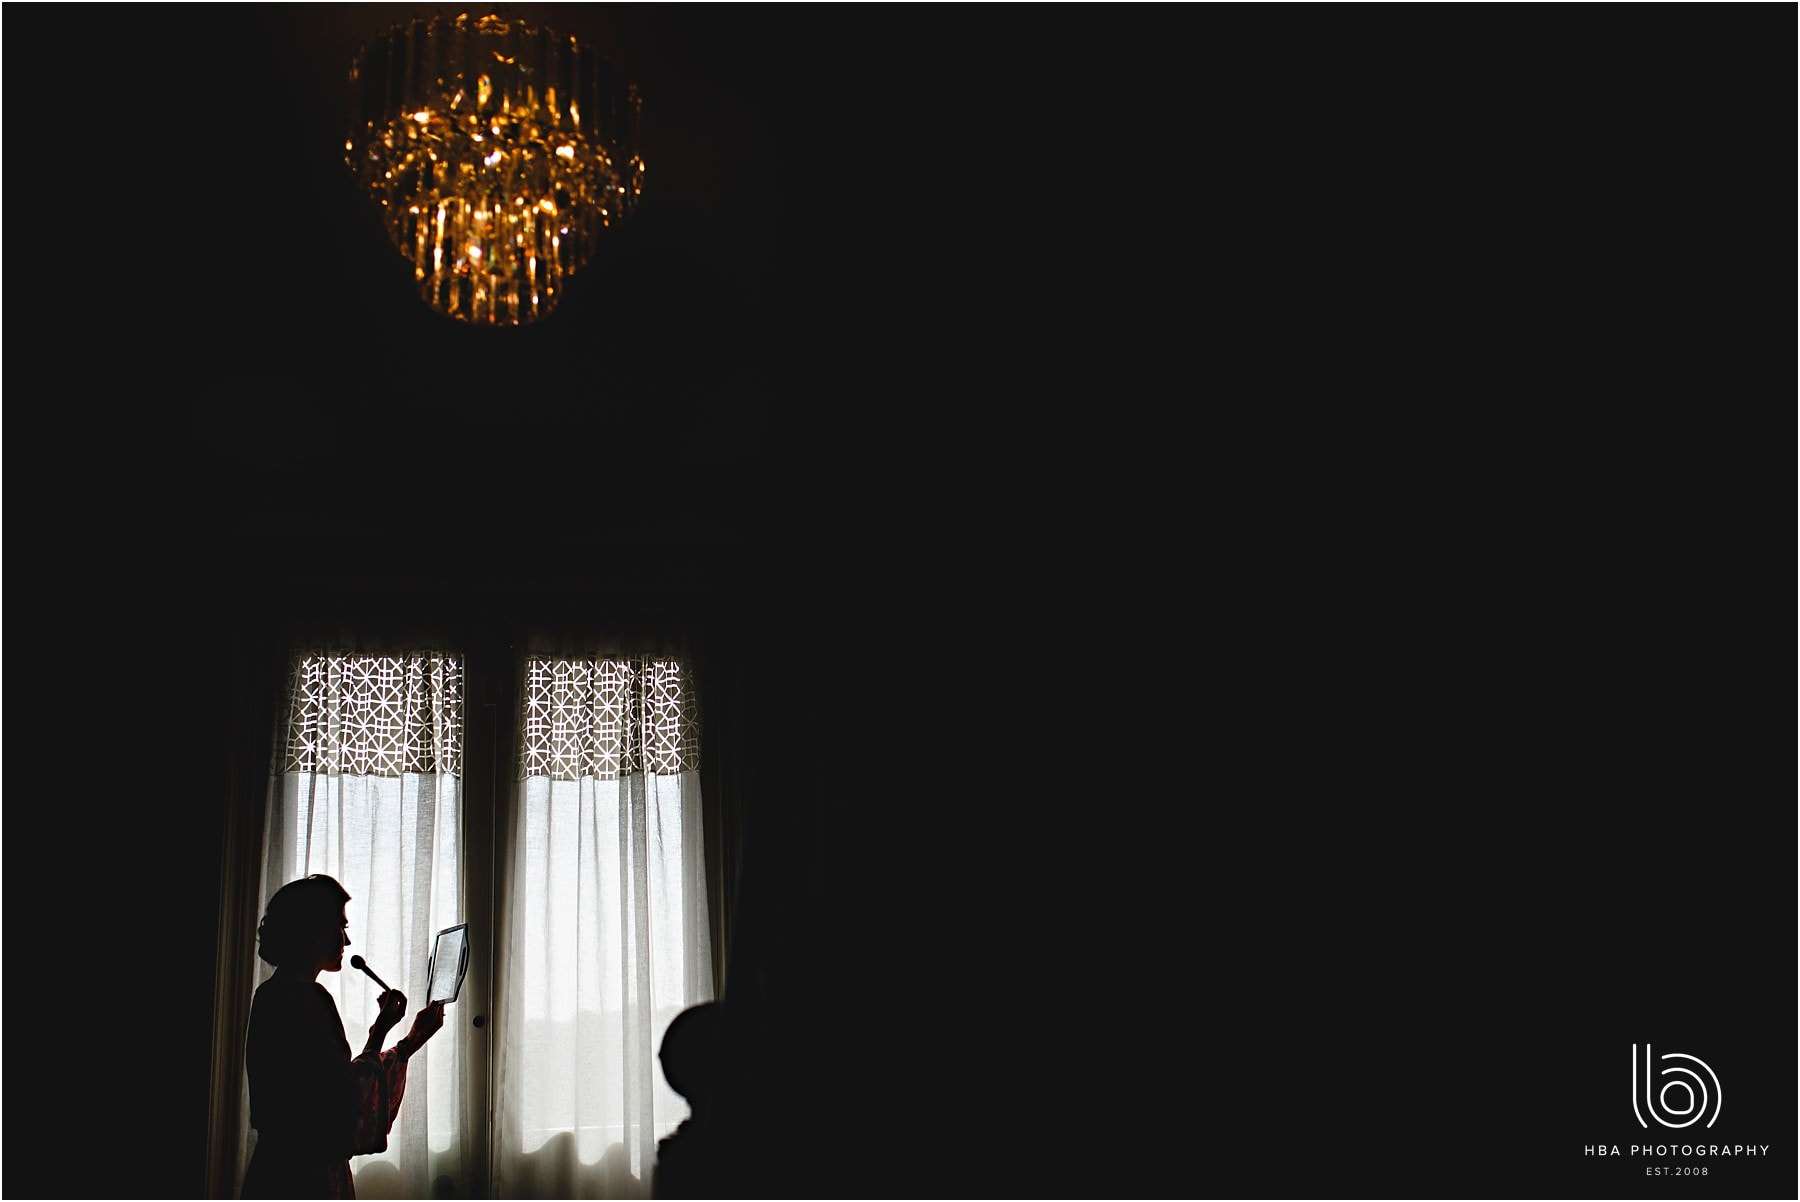 the bride in silhouette in the window